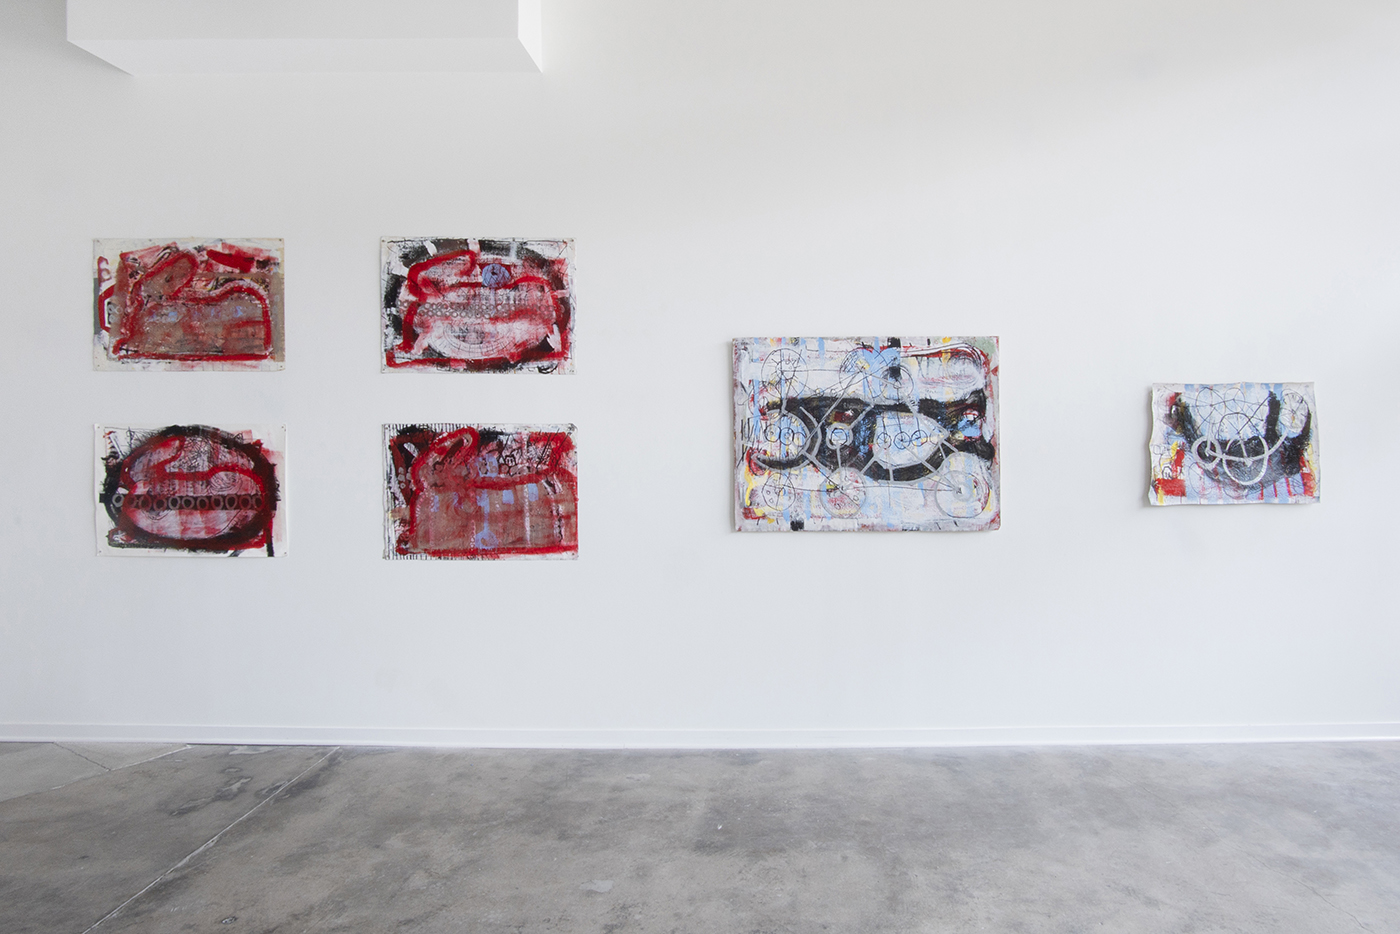 Luchs_installation_view3_web